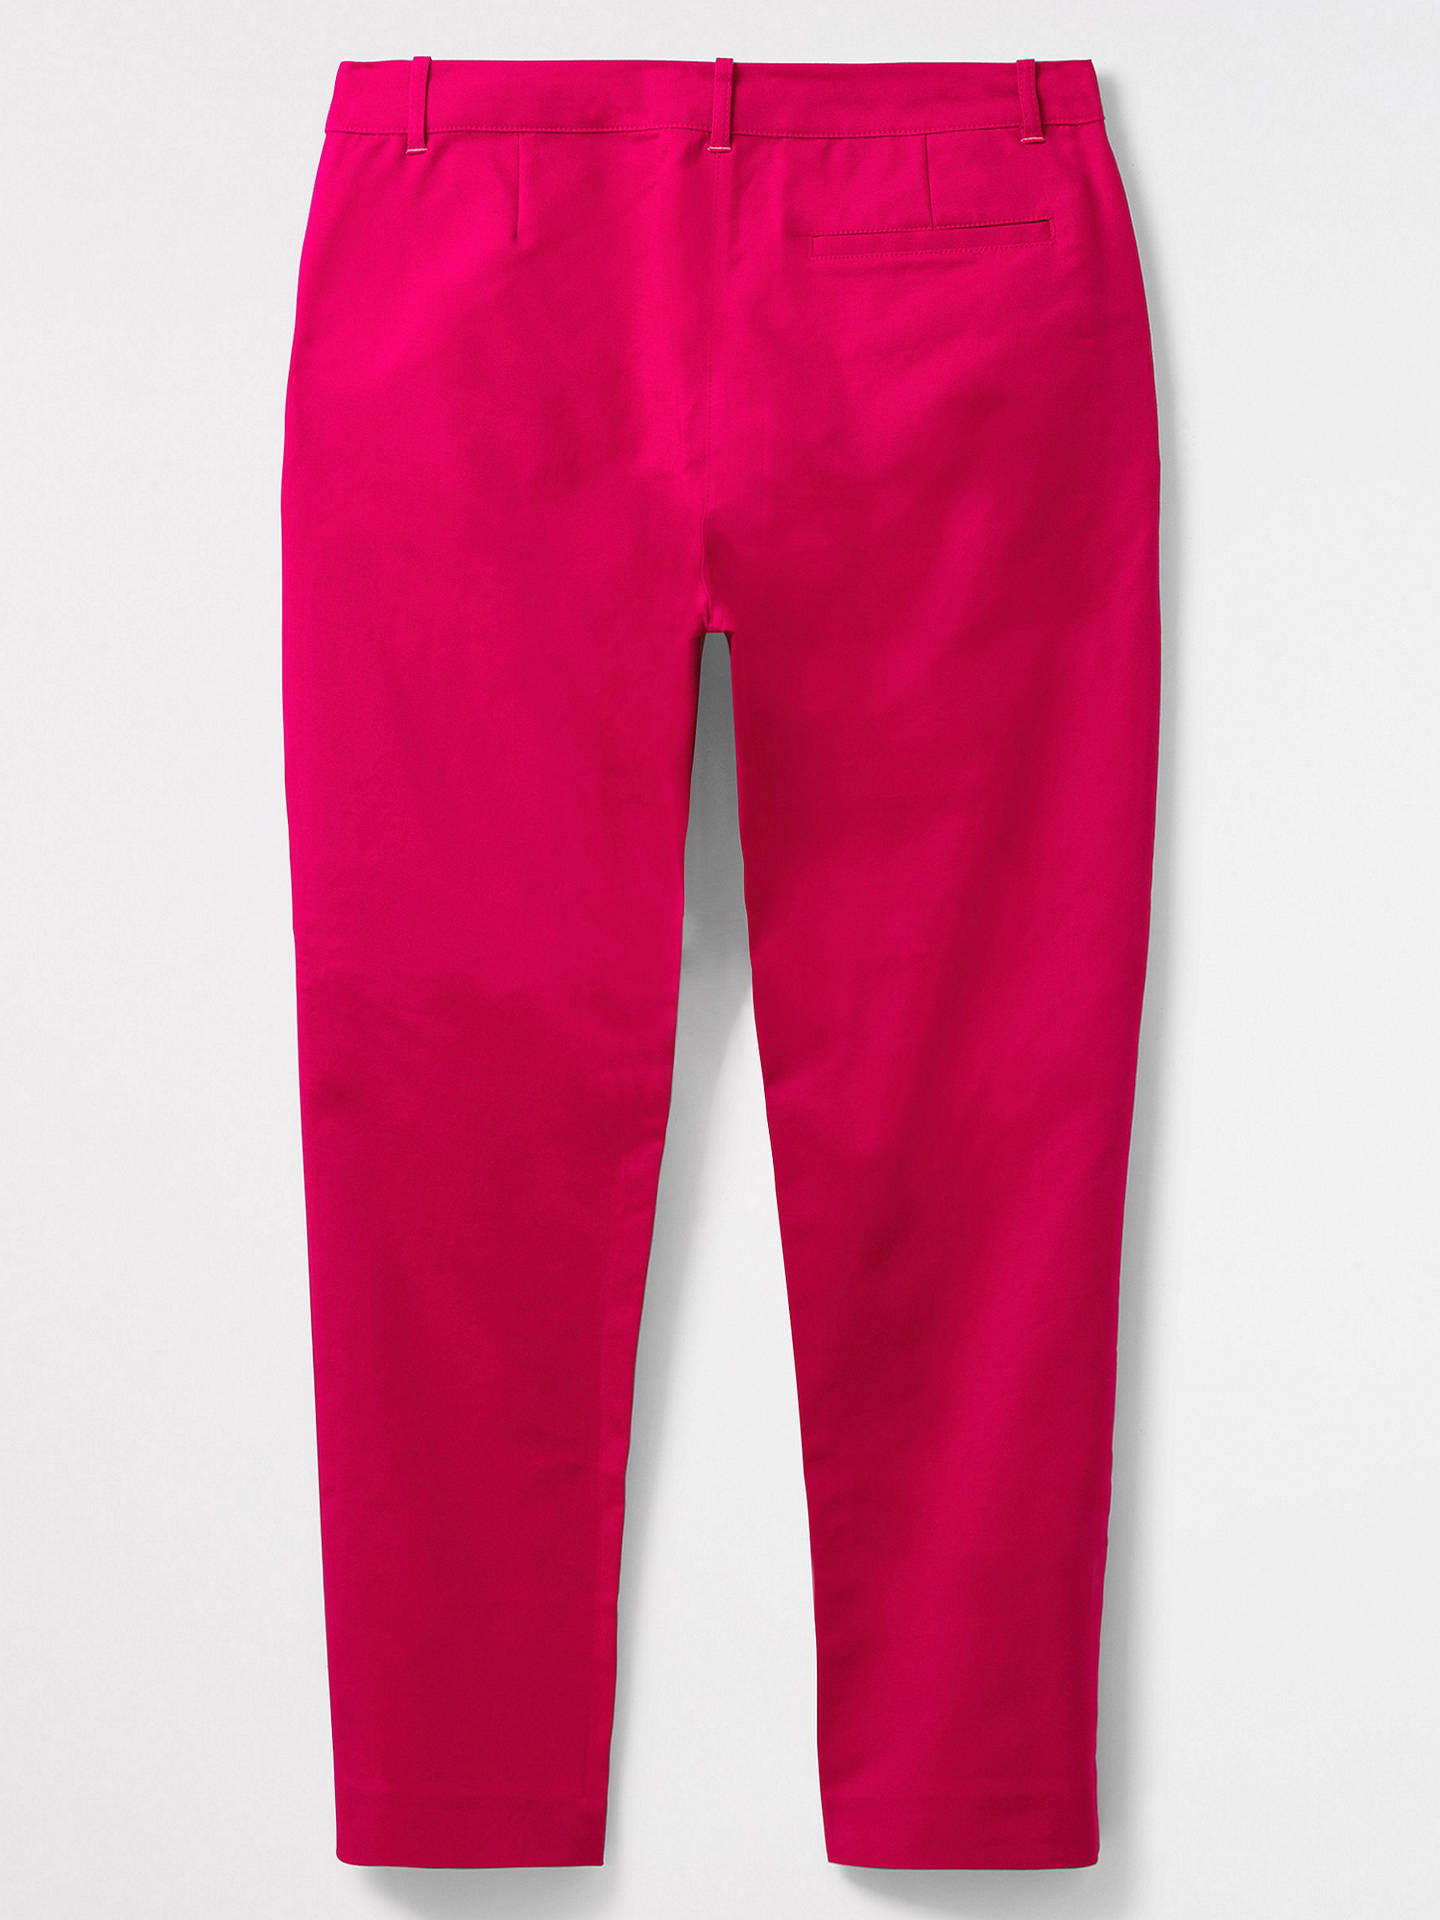 BuyWhite Stuff Norfolk Tailored Trousers, Pink, 8 Online at johnlewis.com